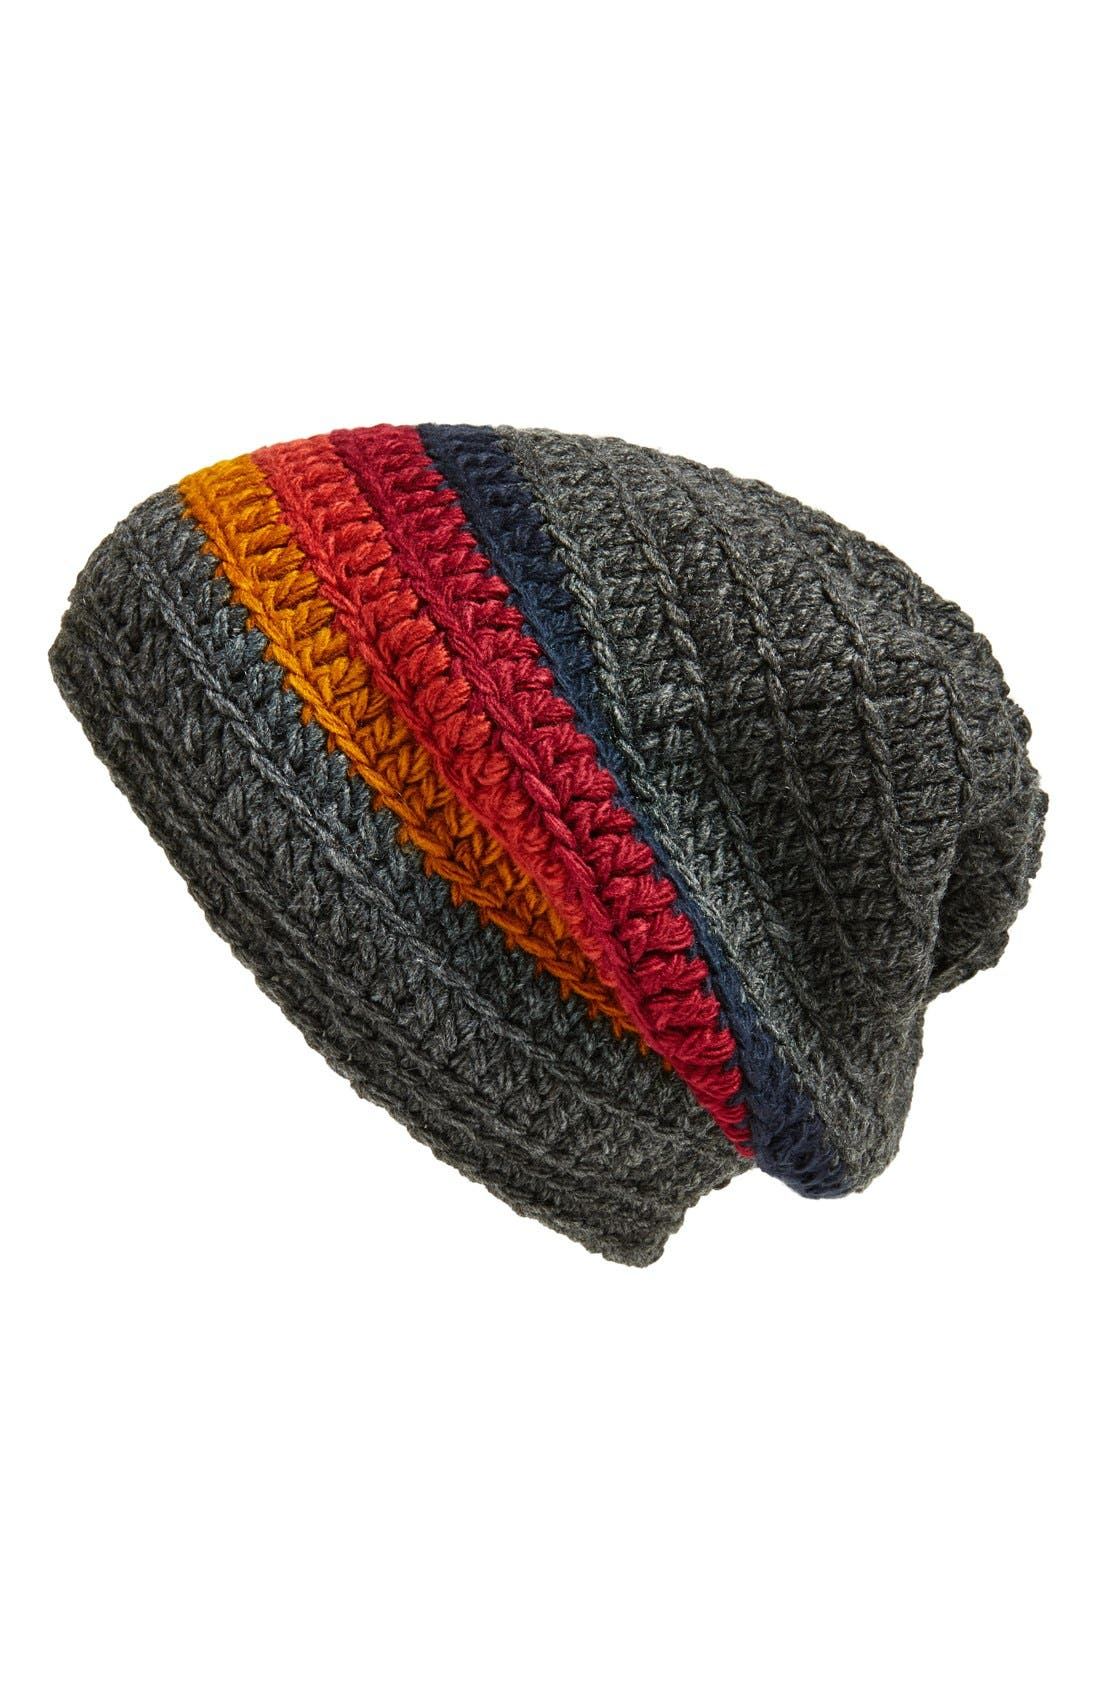 Alternate Image 1 Selected - King & Fifth Supply Co. 'The Beeskie' Beanie